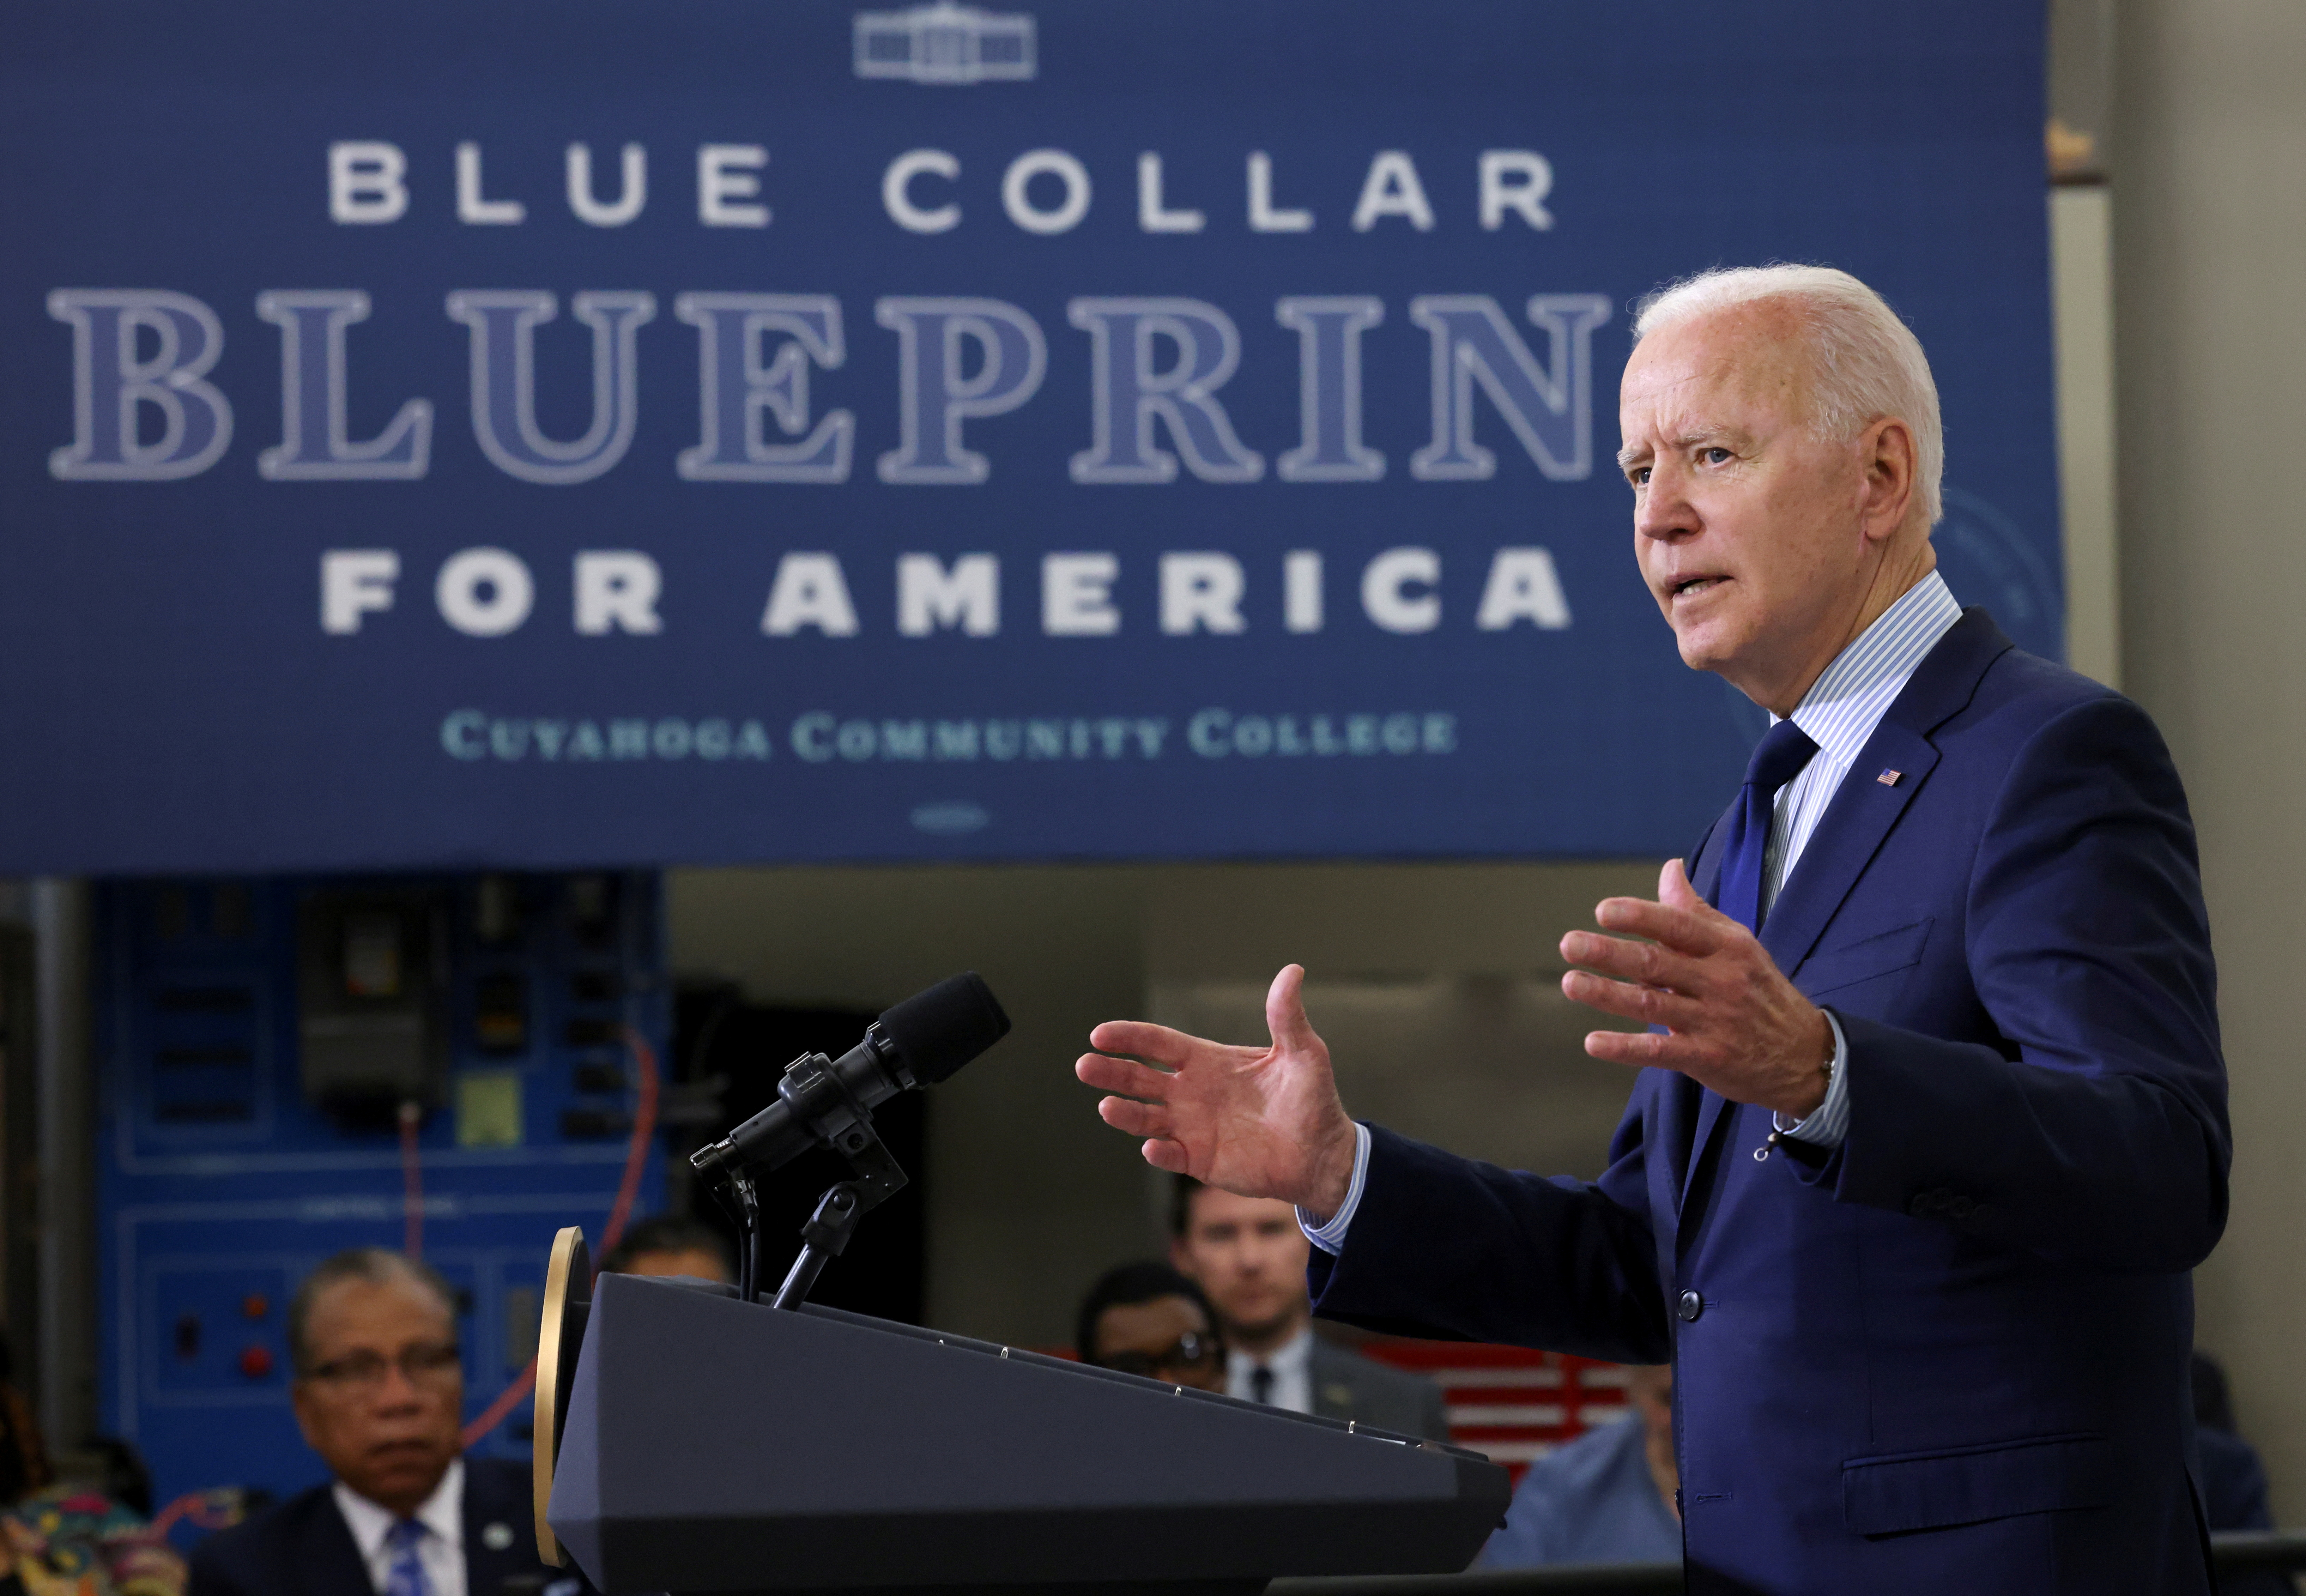 U.S. President Joe Biden delivers remarks on the economy during a visit to Cuyahoga Community College in Cleveland, Ohio, U.S., May 27, 2021. REUTERS/Evelyn Hockstein/File Photo